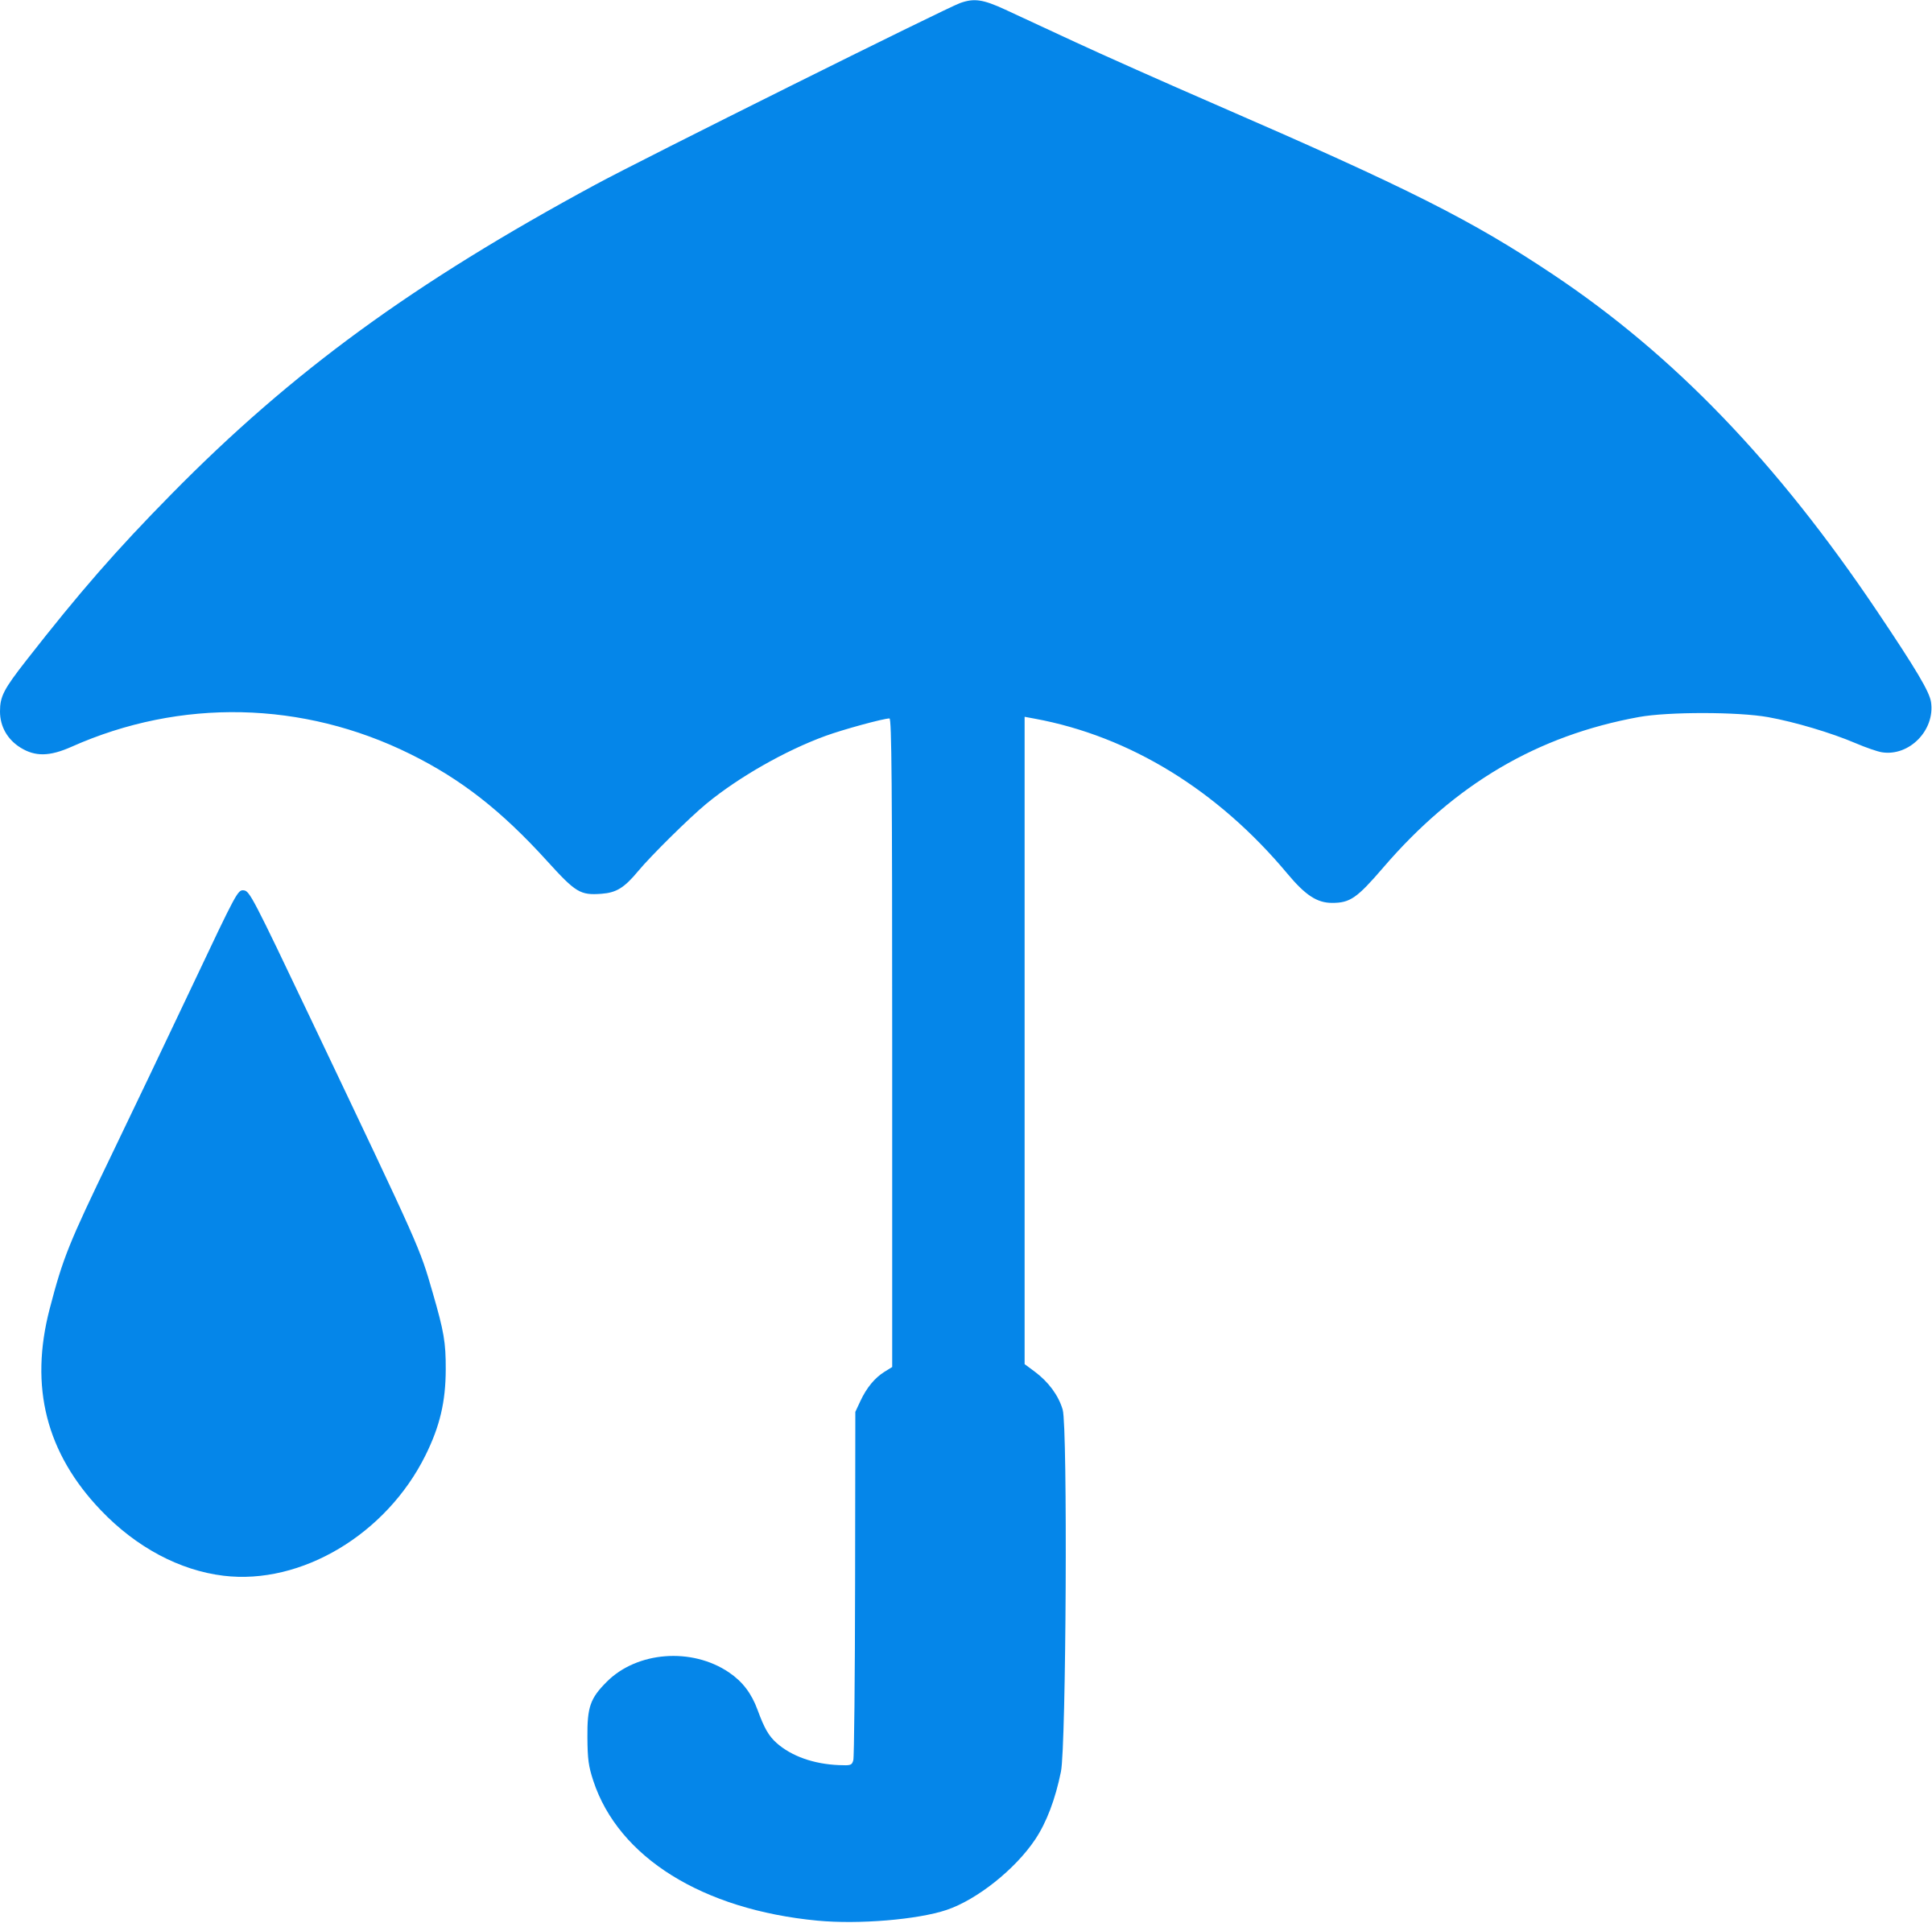 Blue Umbrella And Raindrop icon by phidari